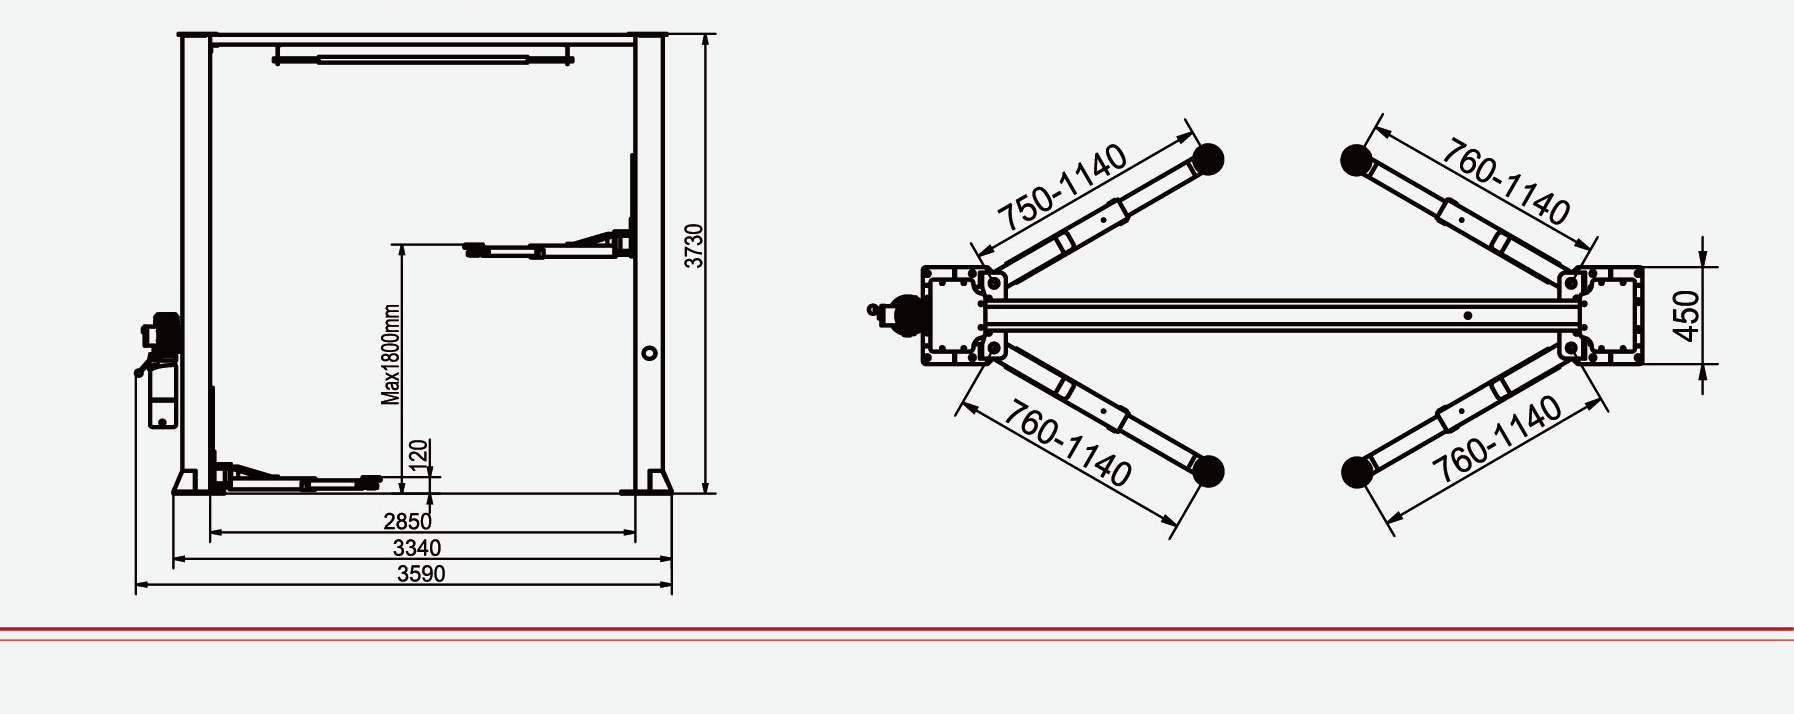 hight resolution of standard car lift hydraulic two post junhv jh 4000c with ce certification for car lifting